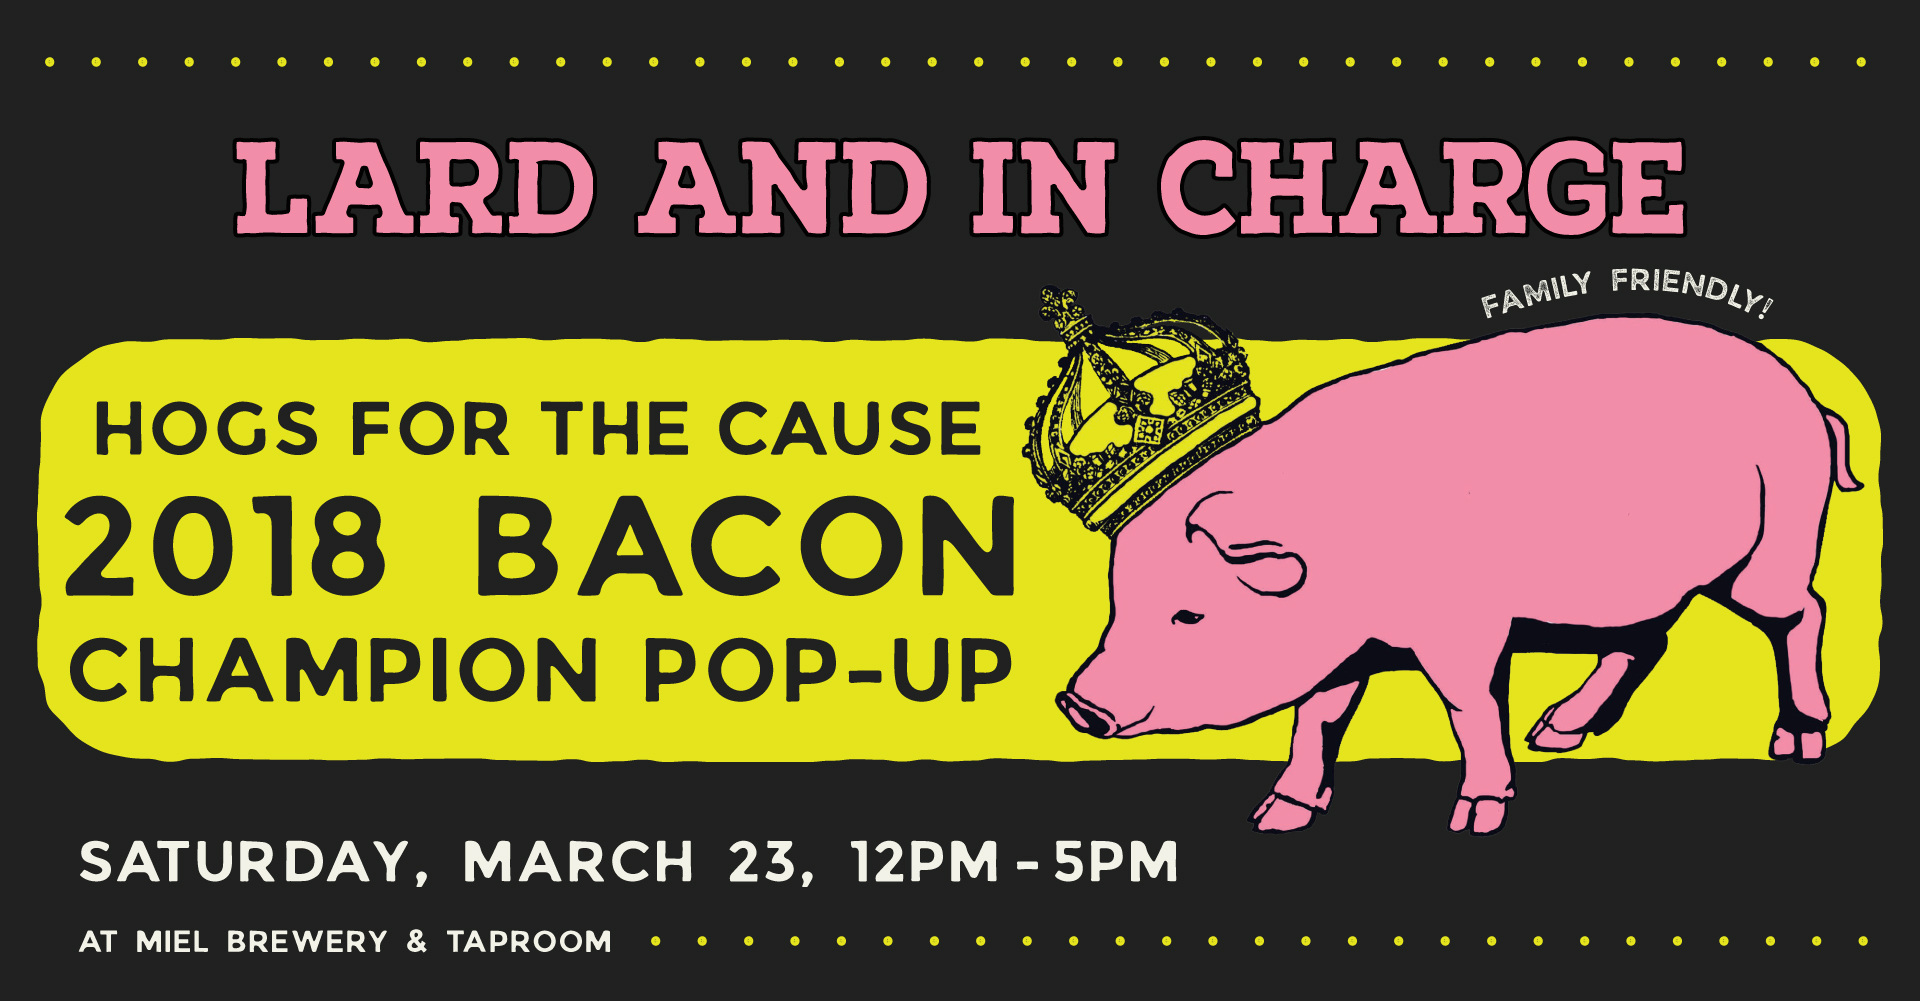 Miel Brewery_New Orleans_Hogs for the Cause_Lard and in charge pop up